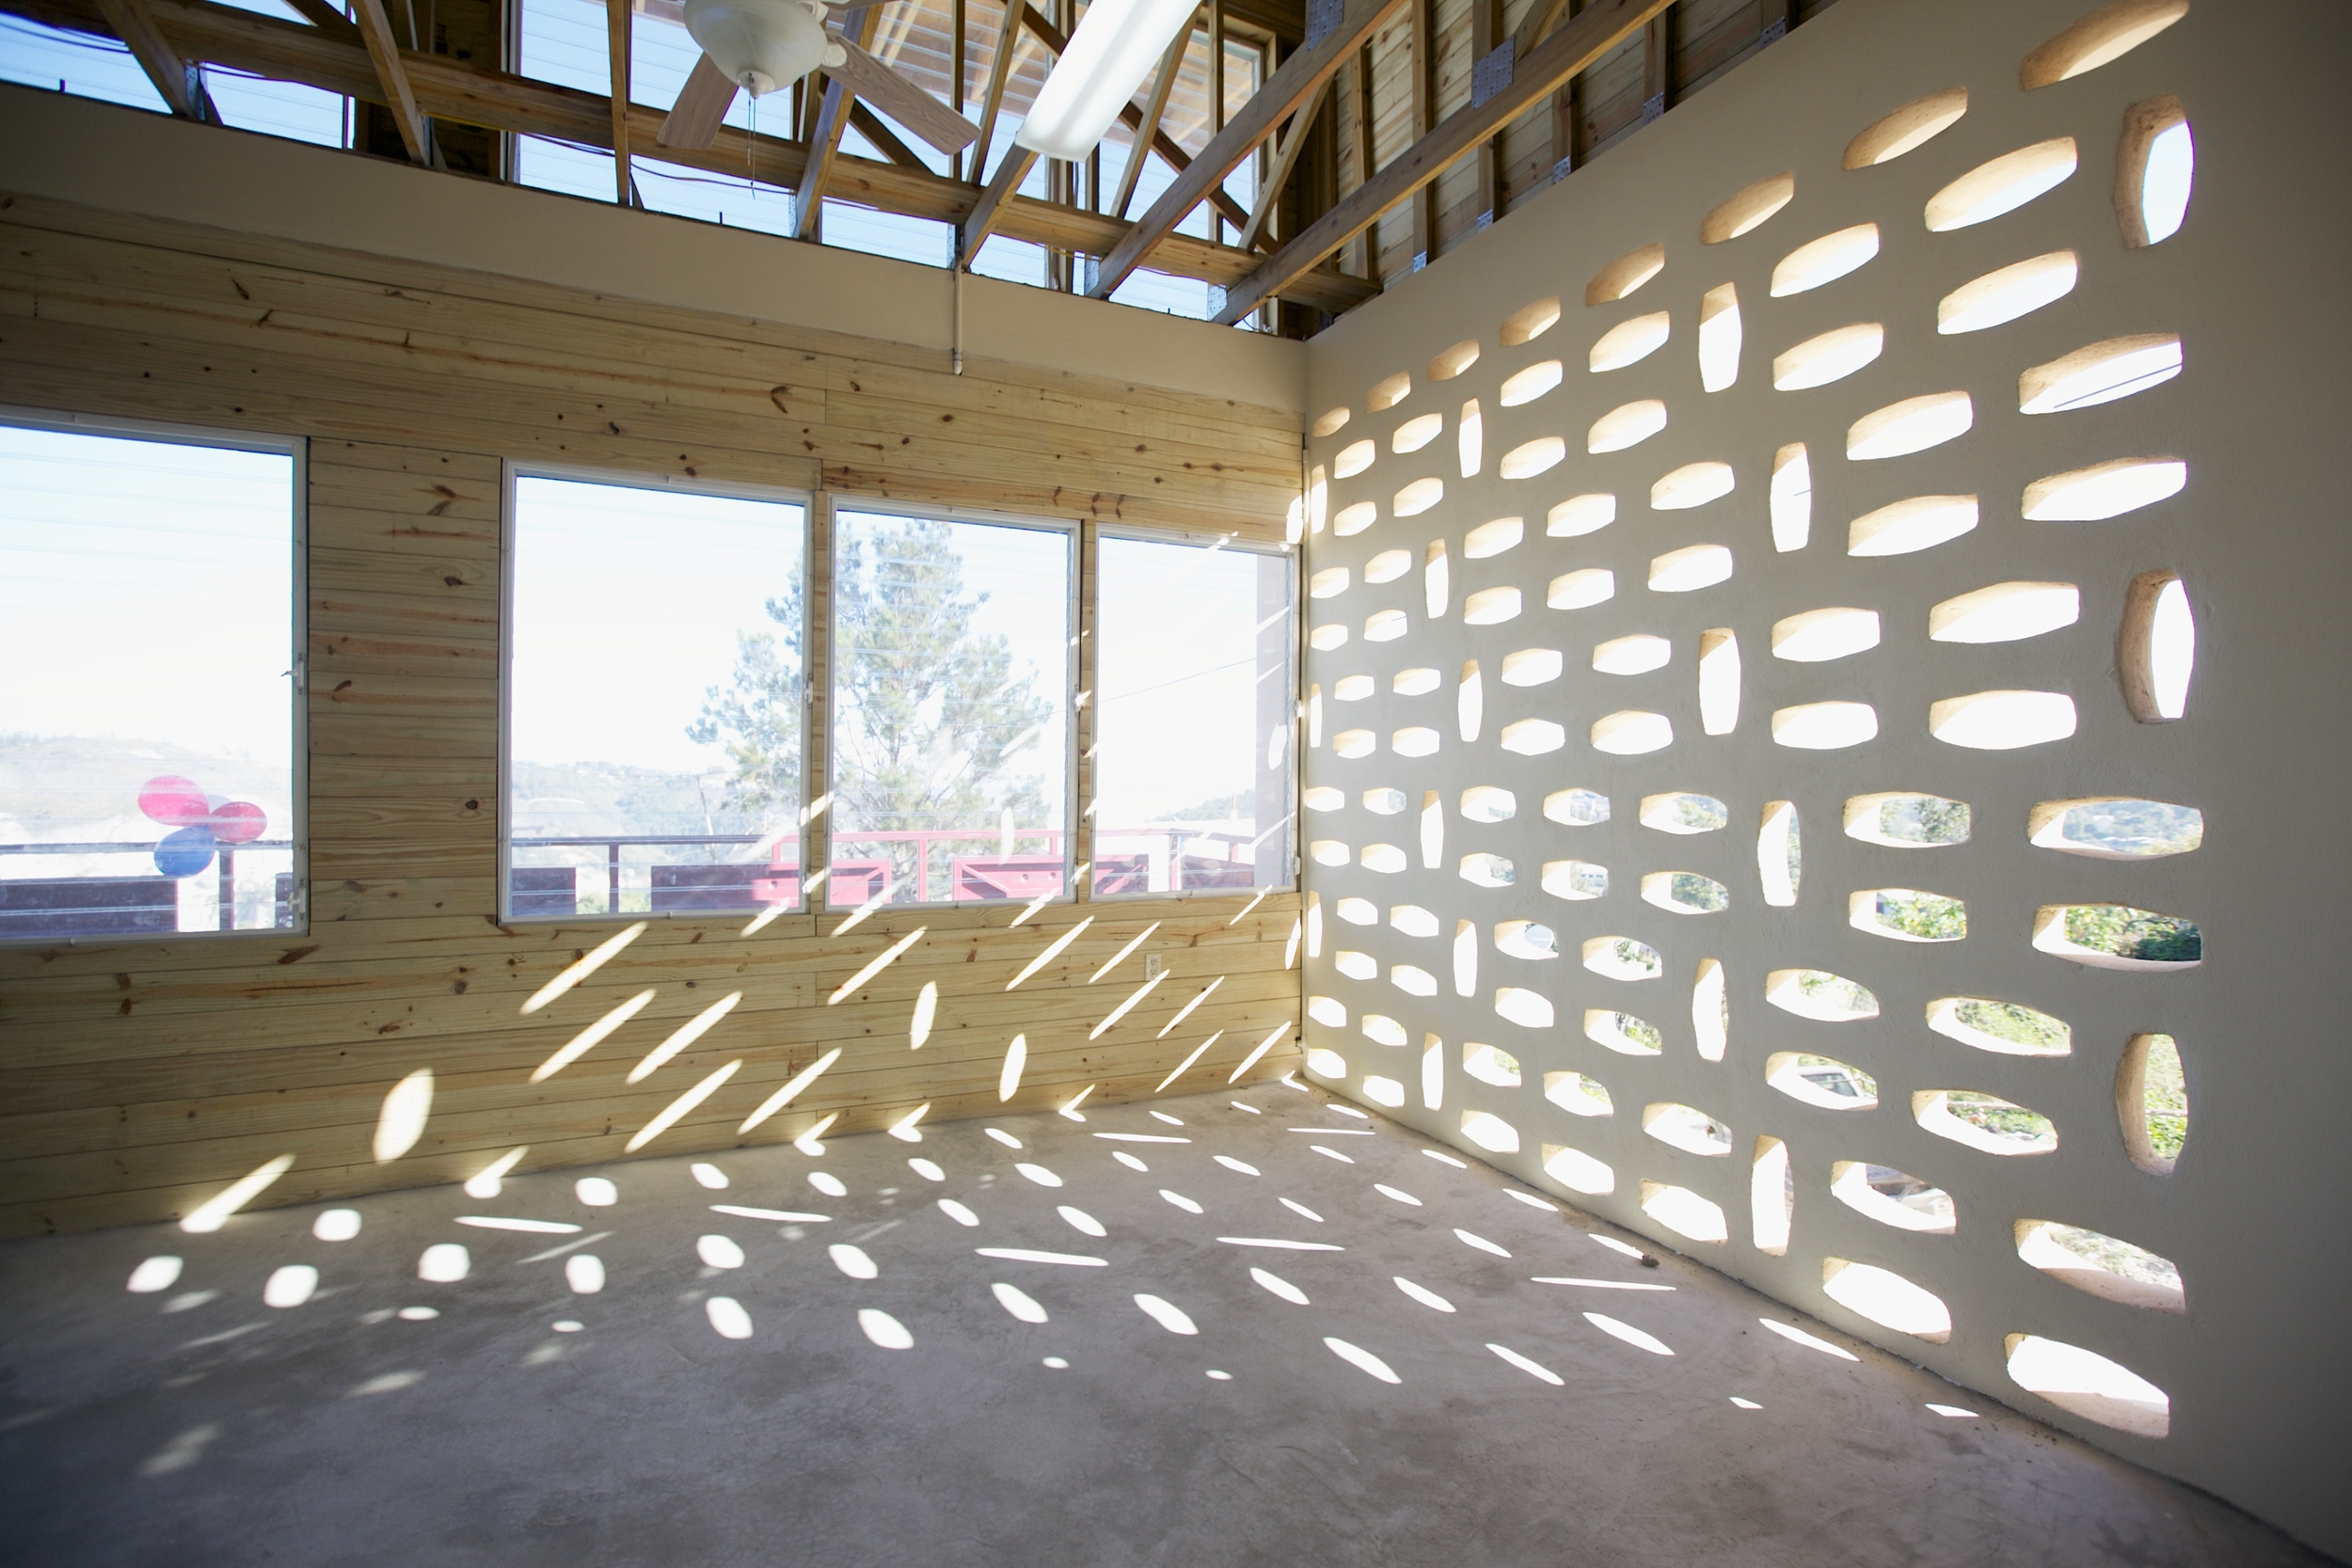 Locally-cast masonry units provide dappled sunlight to the institute's interior spaces.